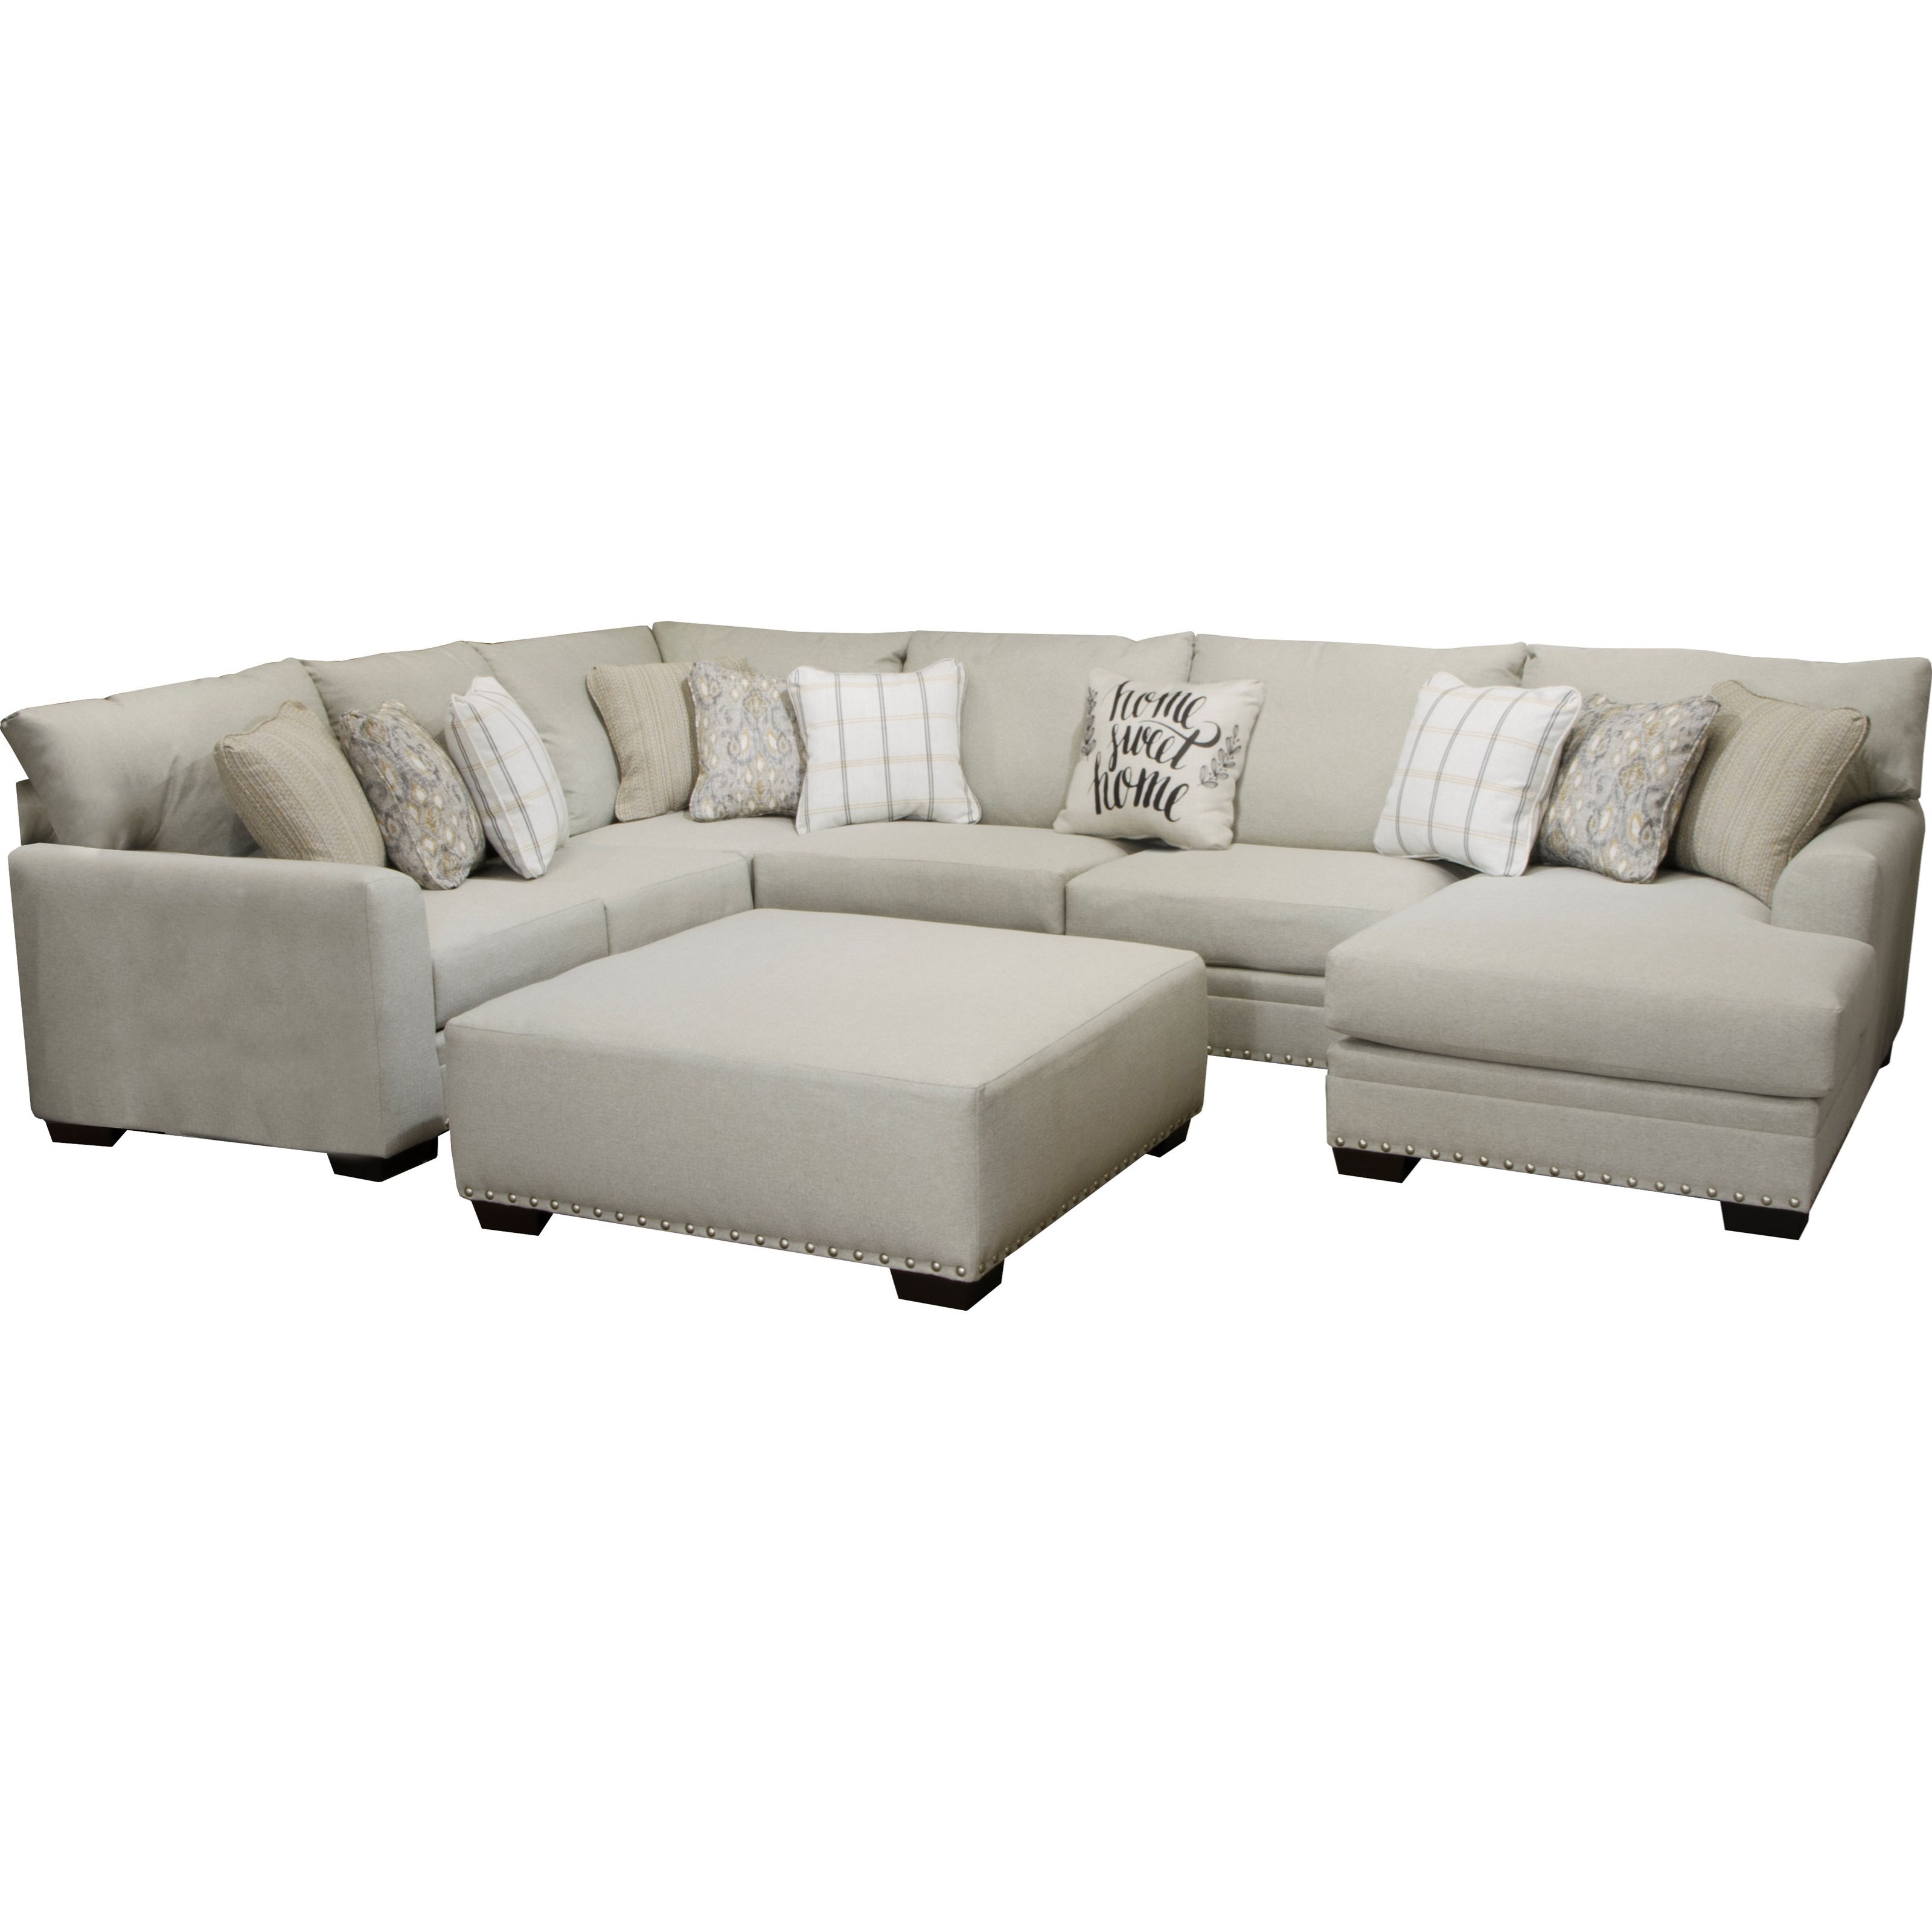 middleton 3 piece sectional w chaise